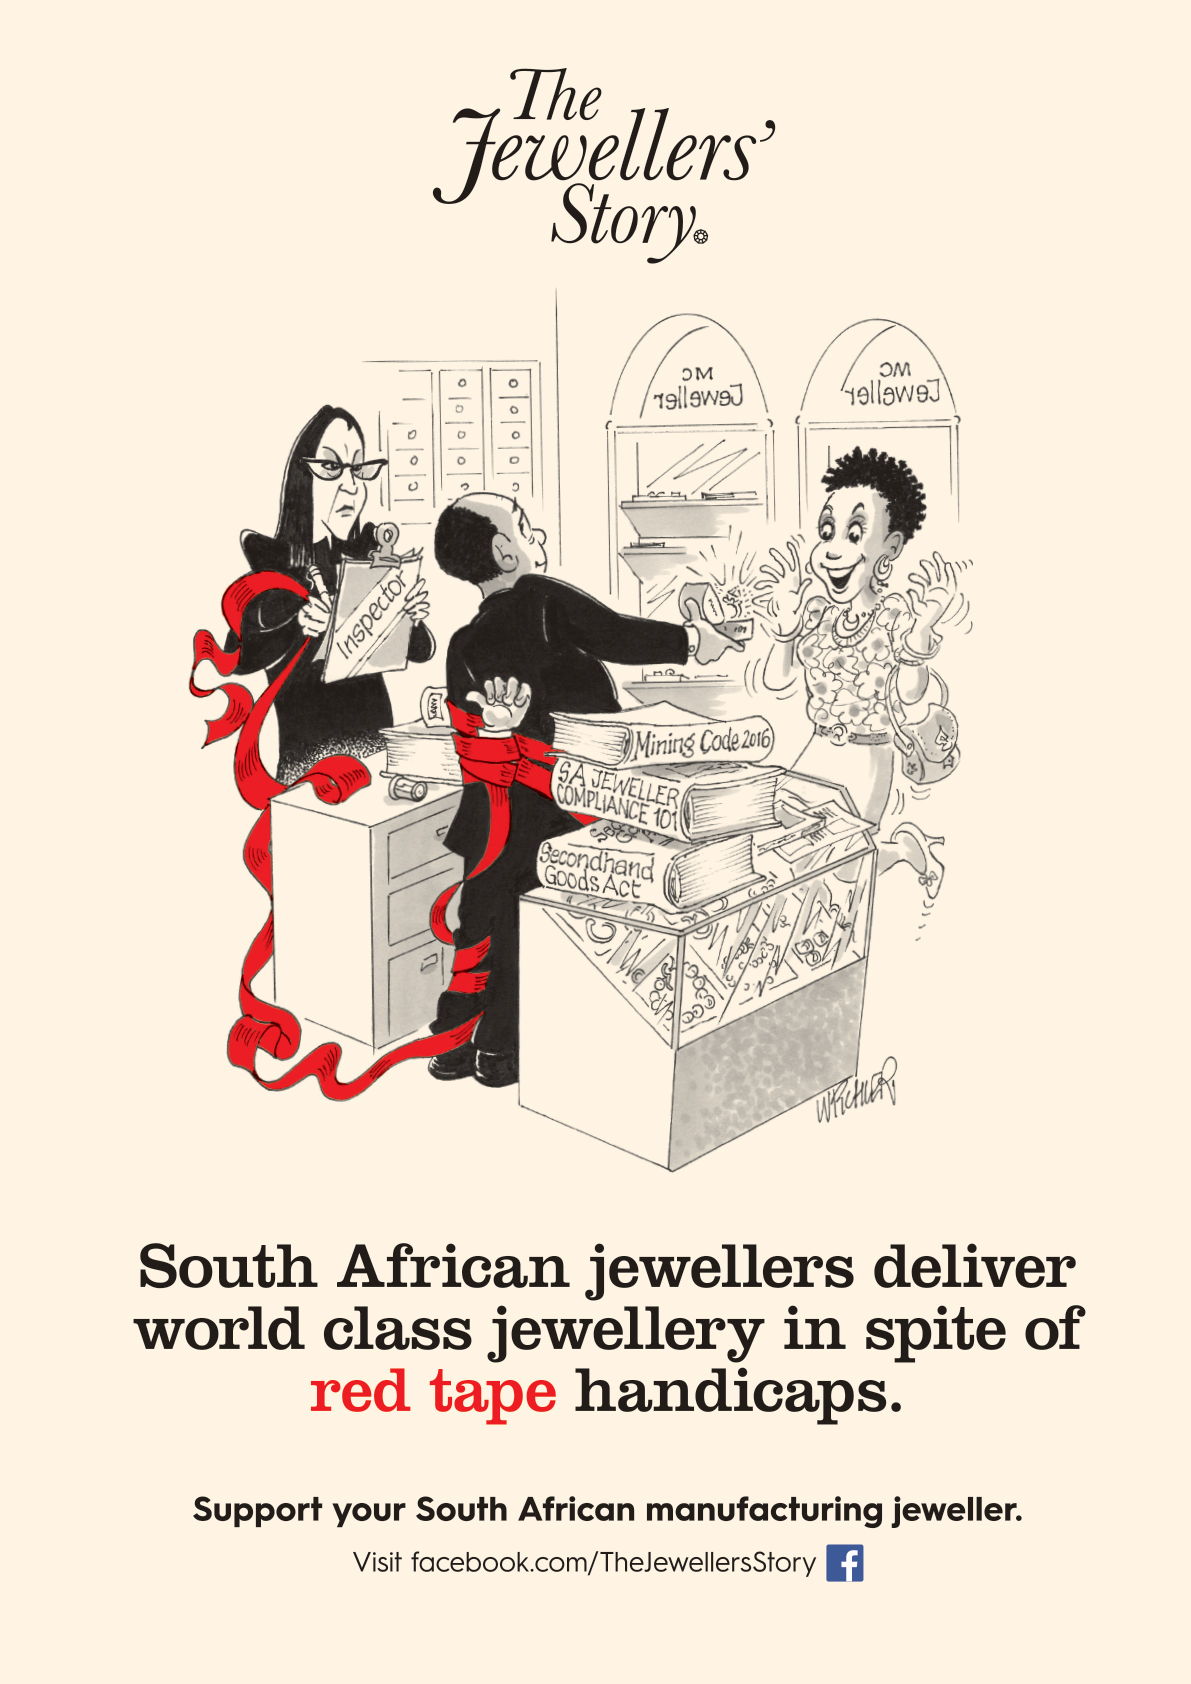 Delivering world class jewellery in spite of red  tape handicaps